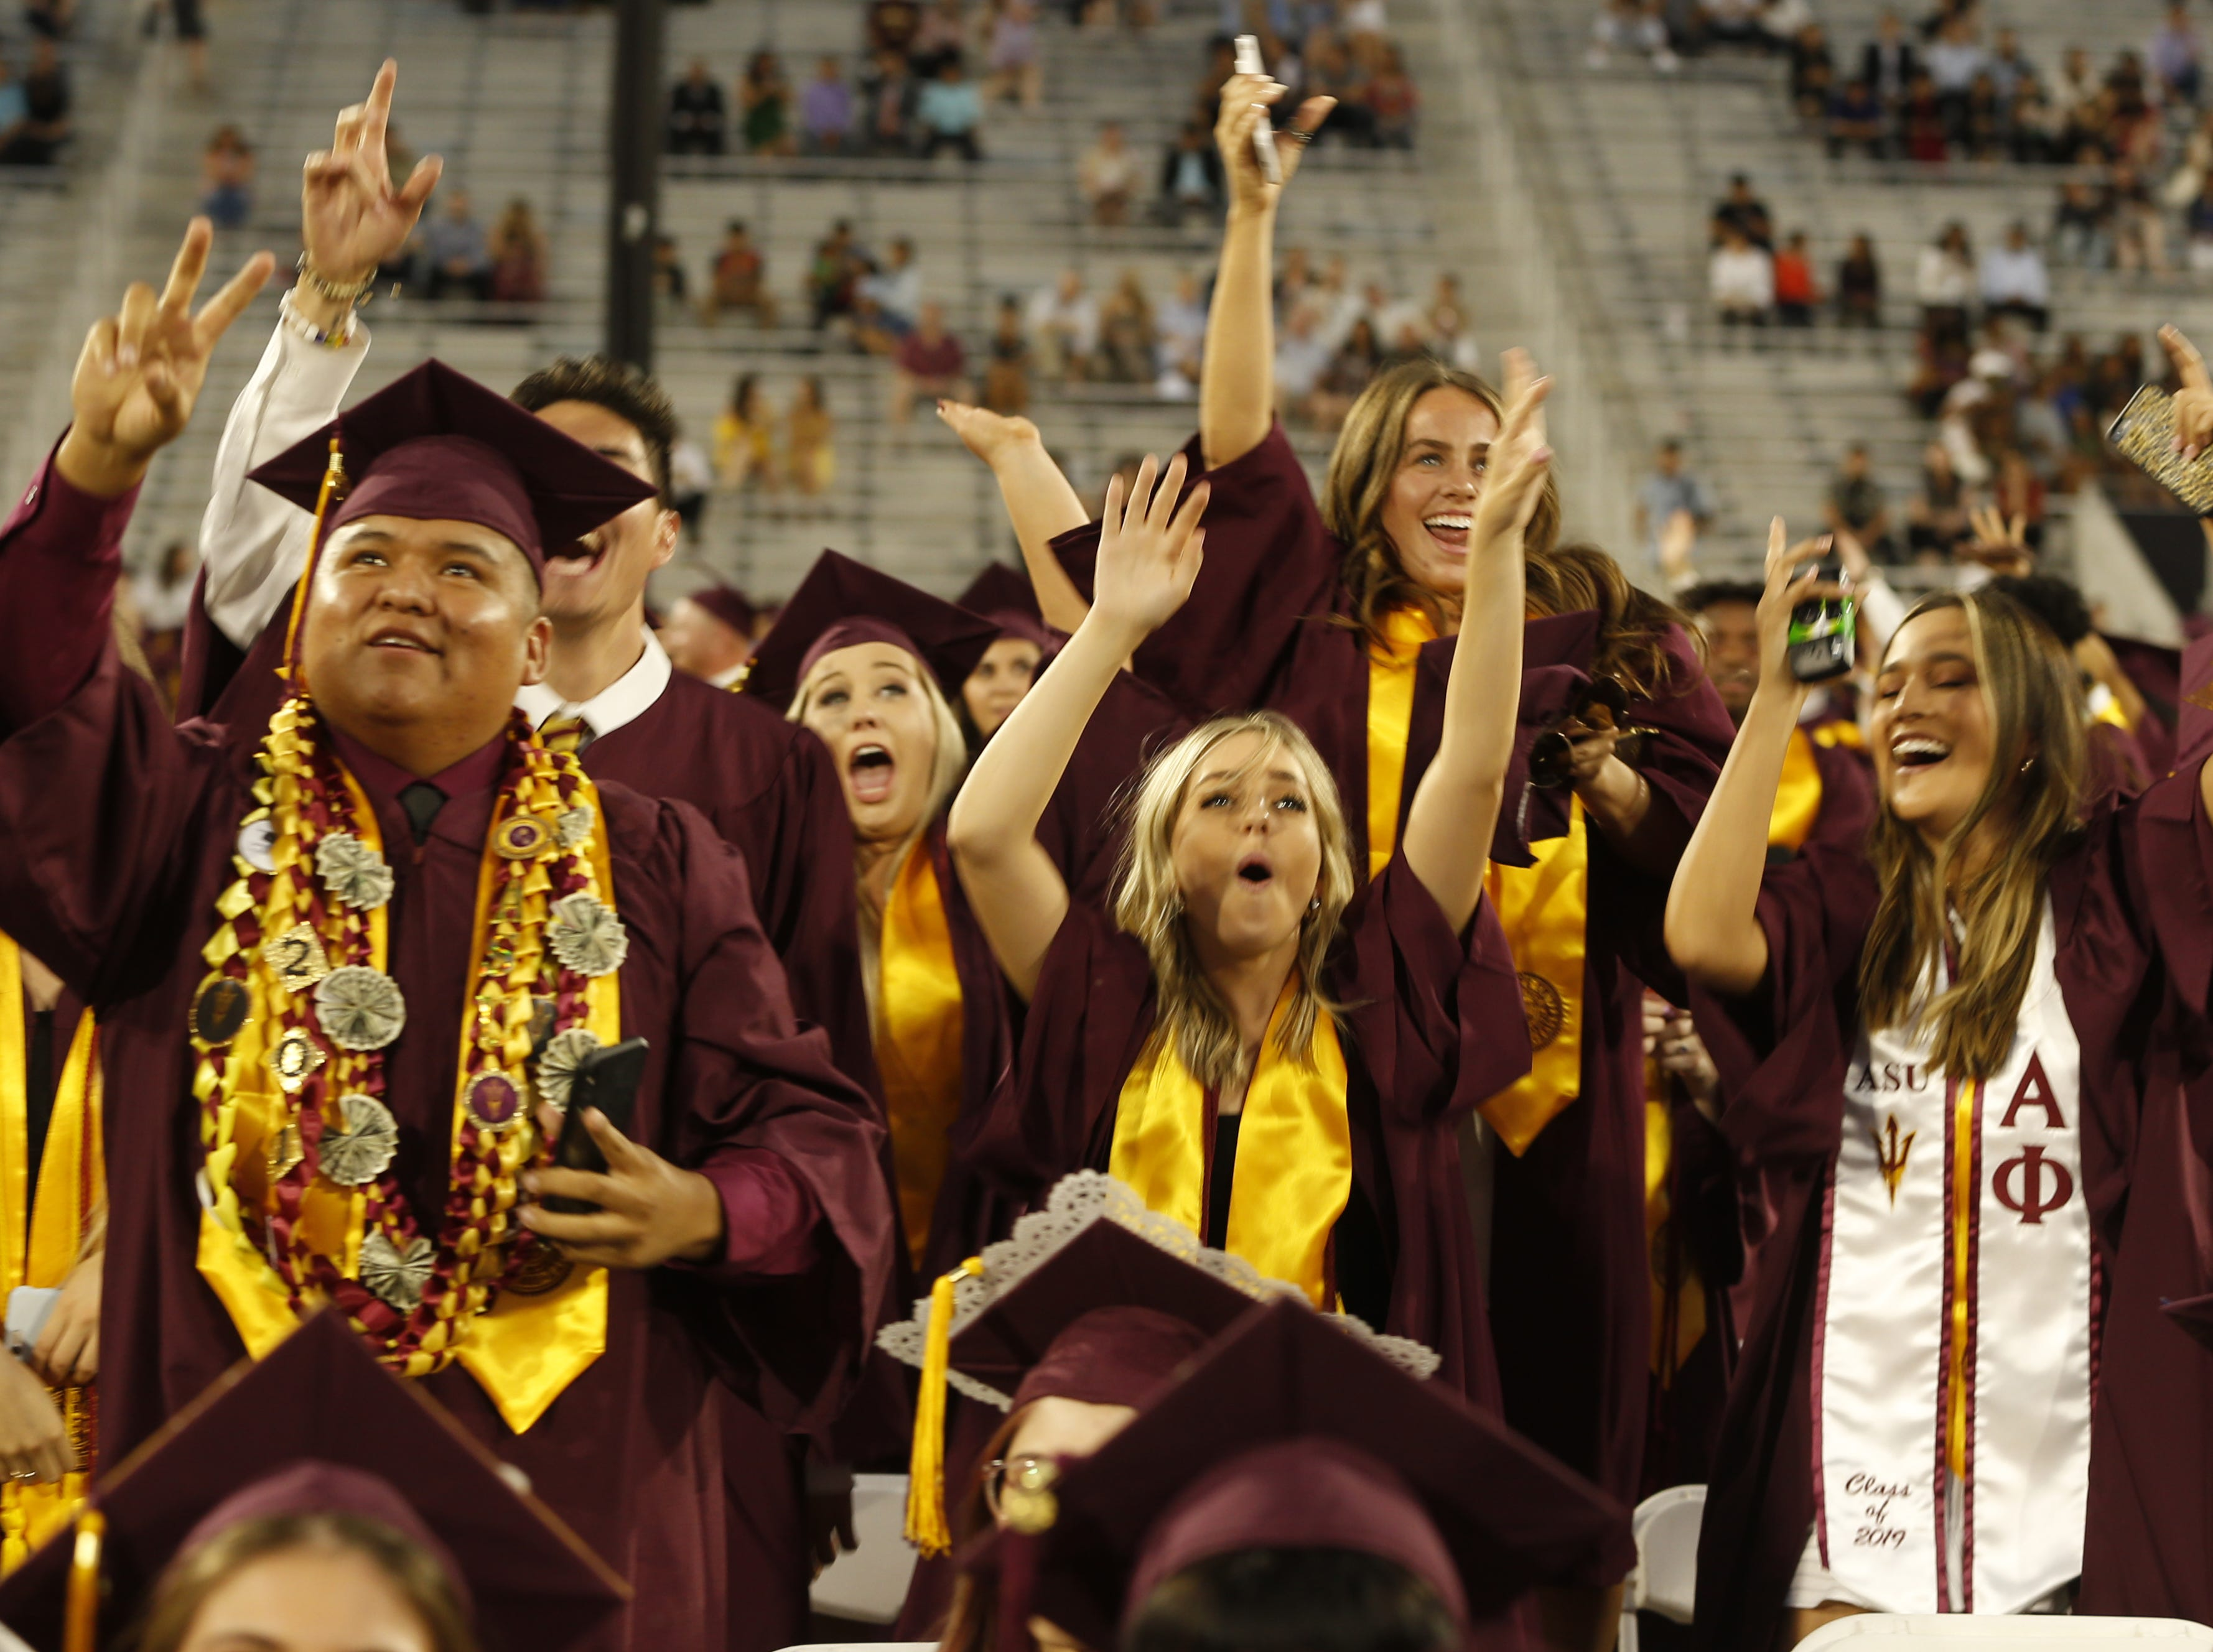 ASU graduates react as they are put on the big screen during ASU's Undergraduate Commencement at Sun Devil Stadium in Tempe, Ariz. on May 6, 2019.